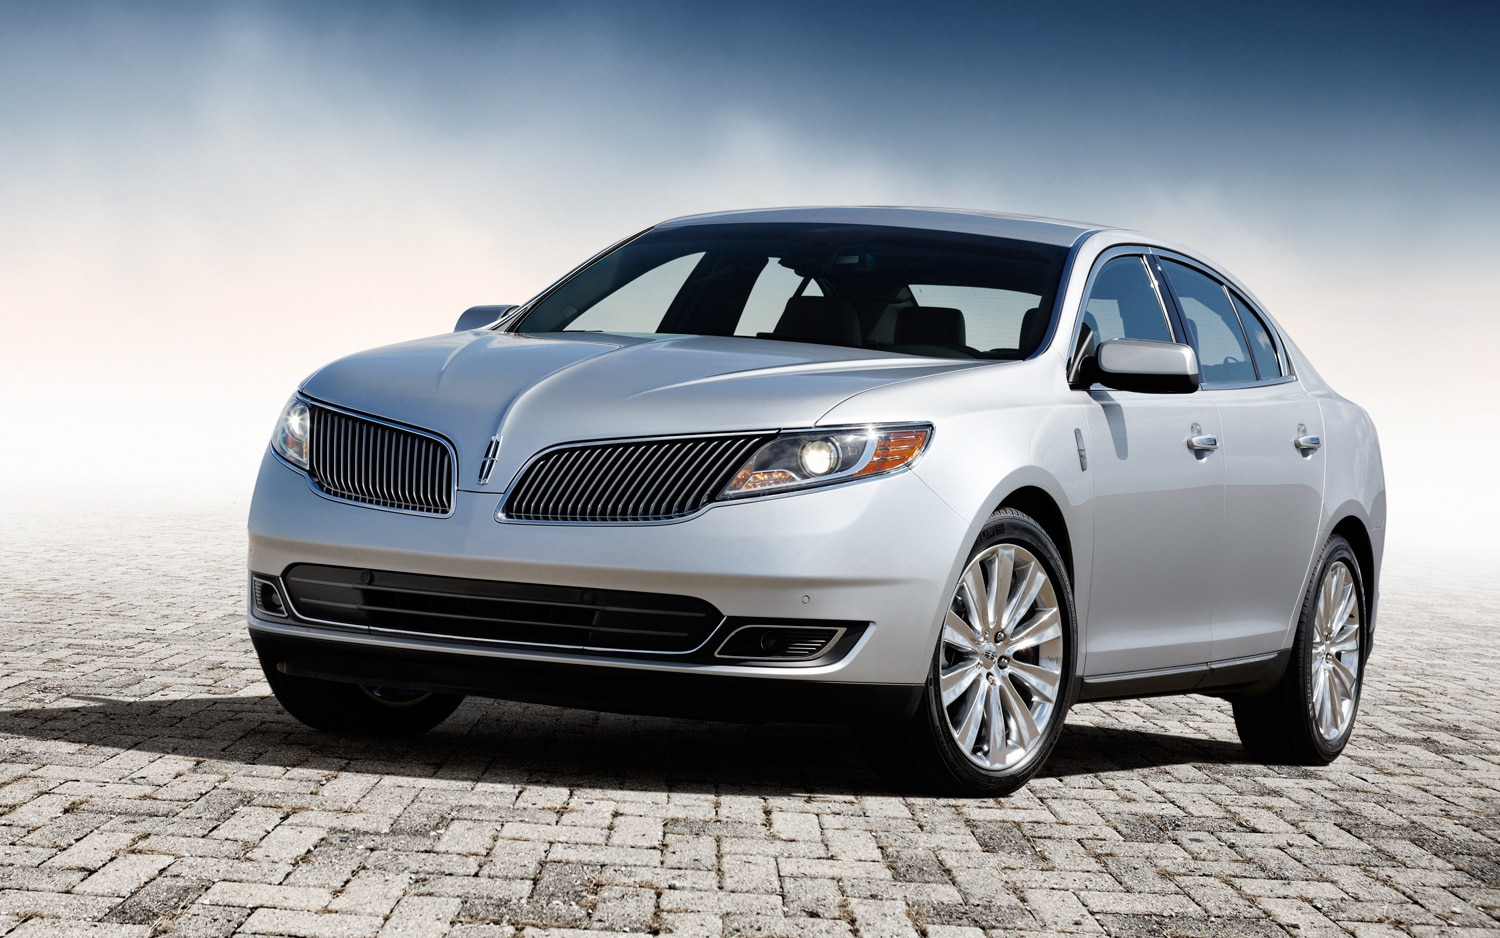 2013 Lincoln MKS EcoBoost Front Left View 21